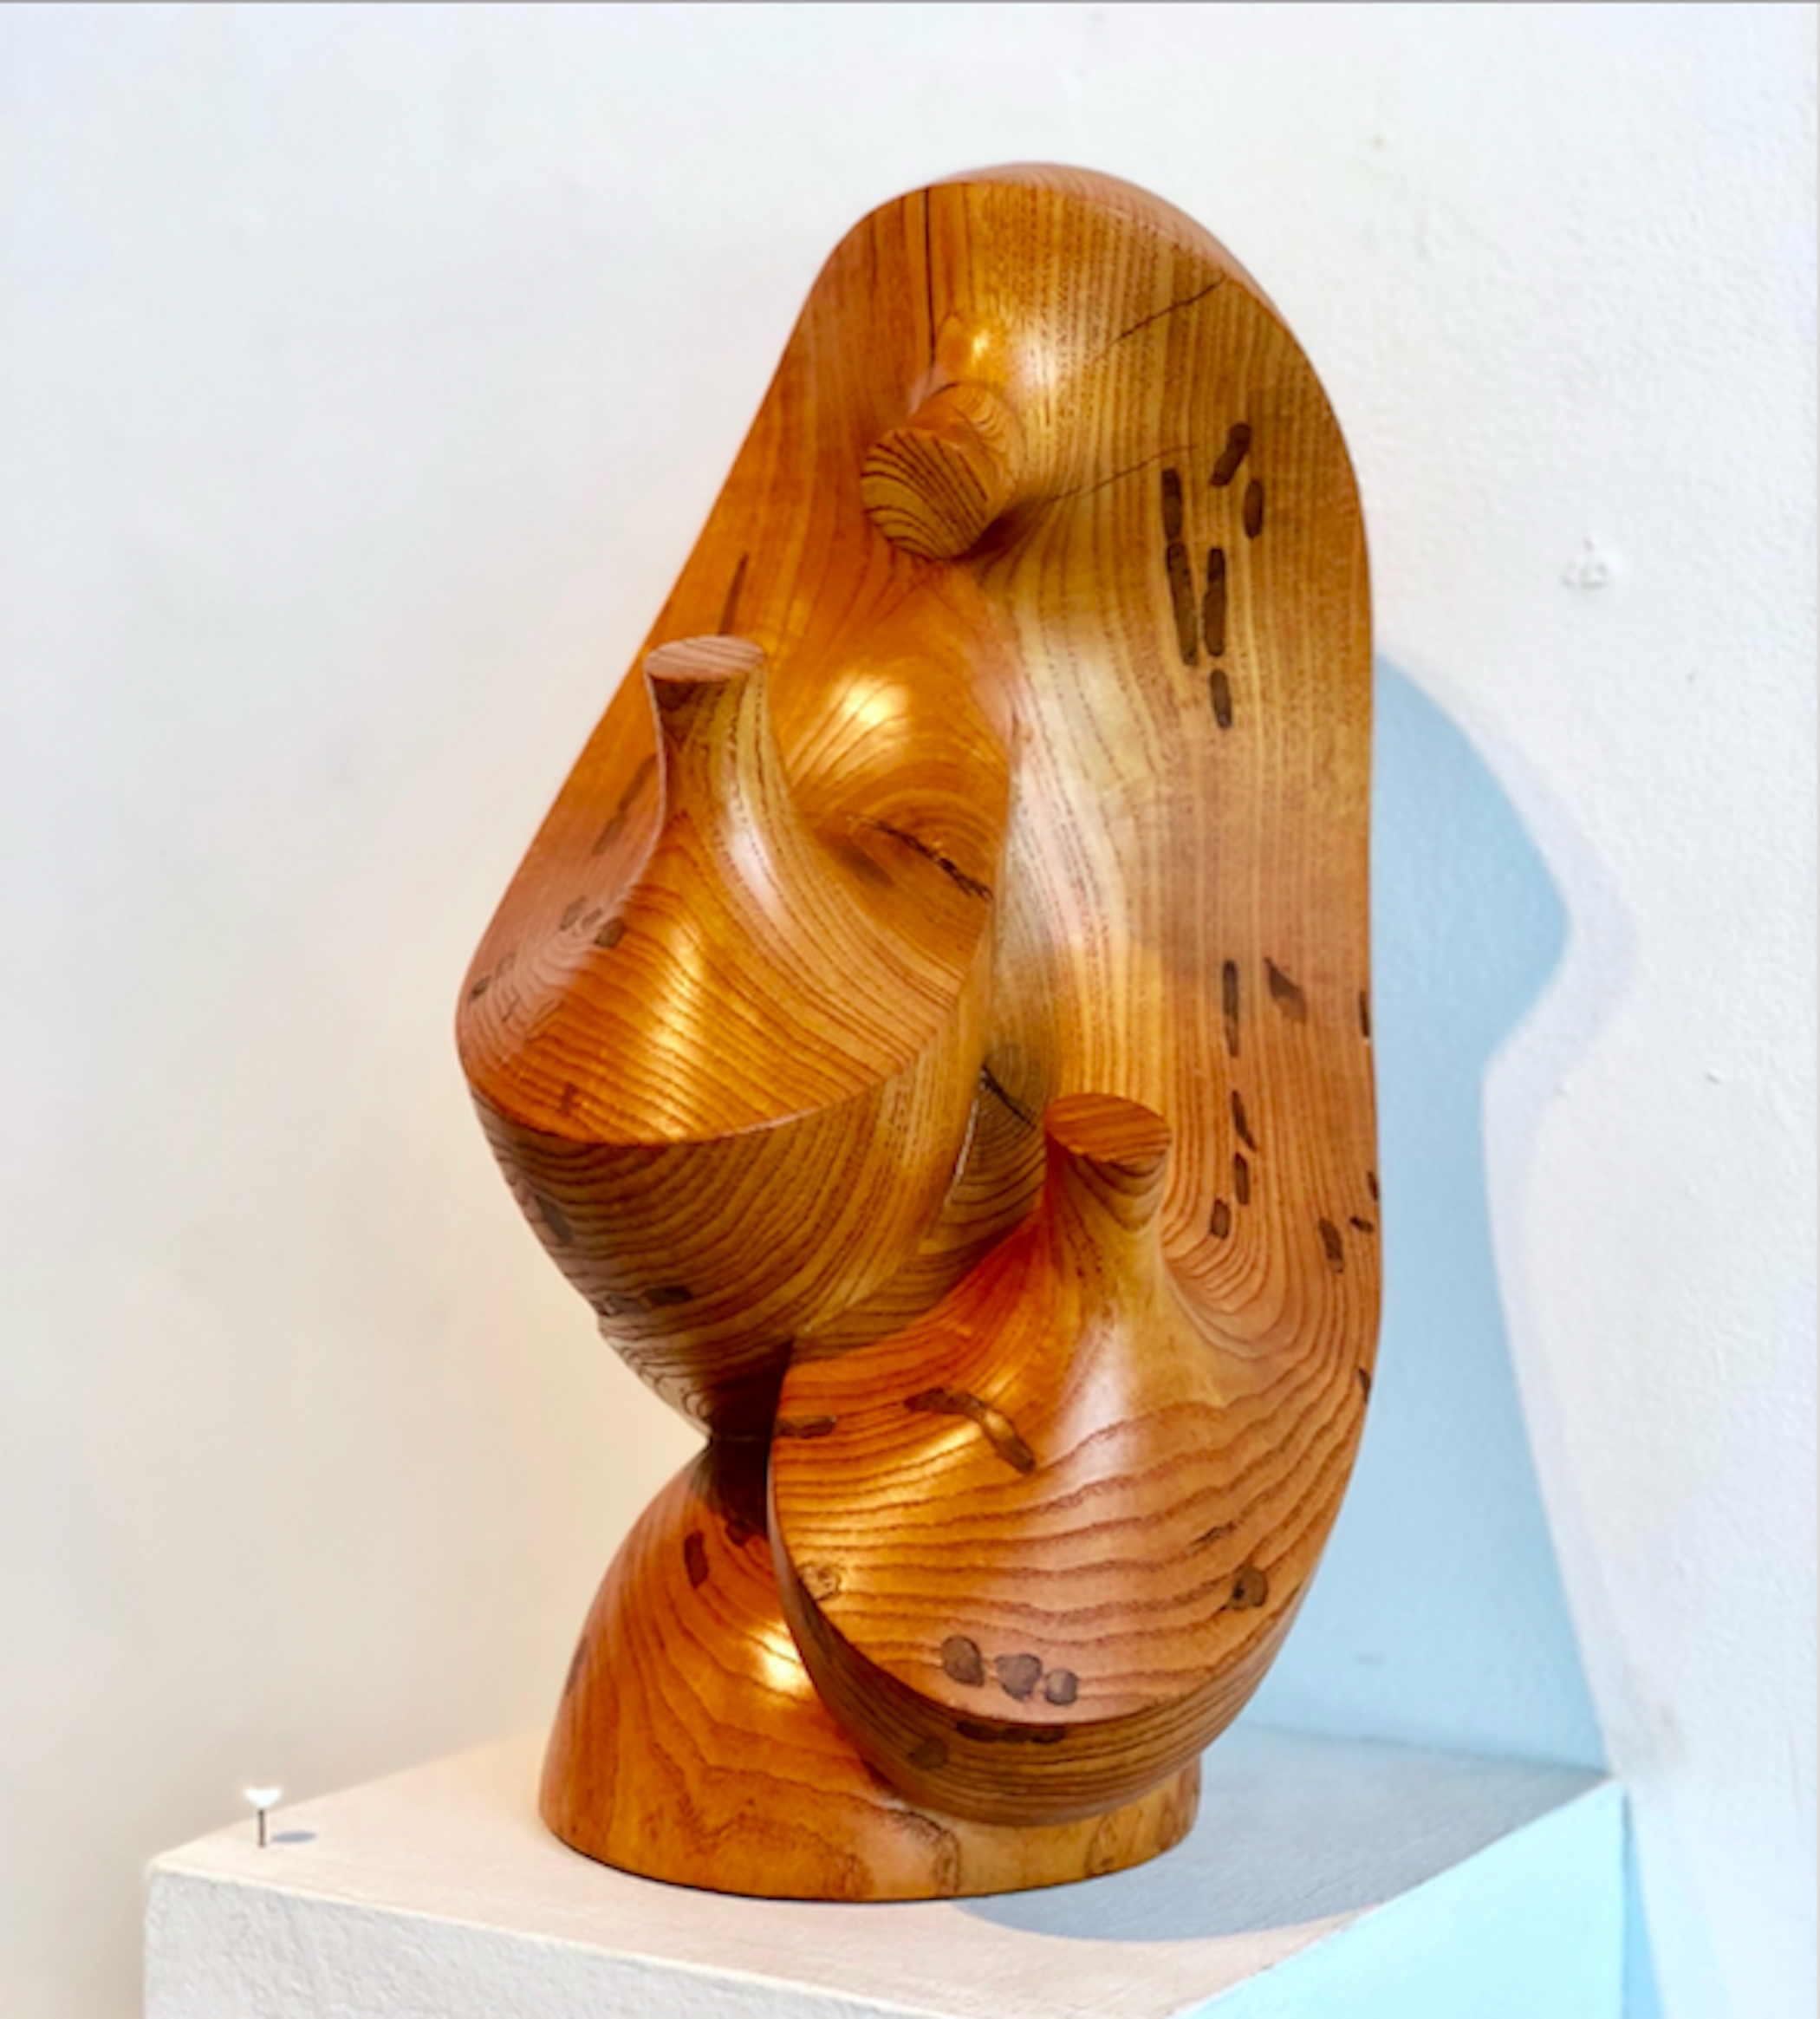 Whispers of Love, 2004, Texas ash, 12 x 6 1/2 x 7 1/2""